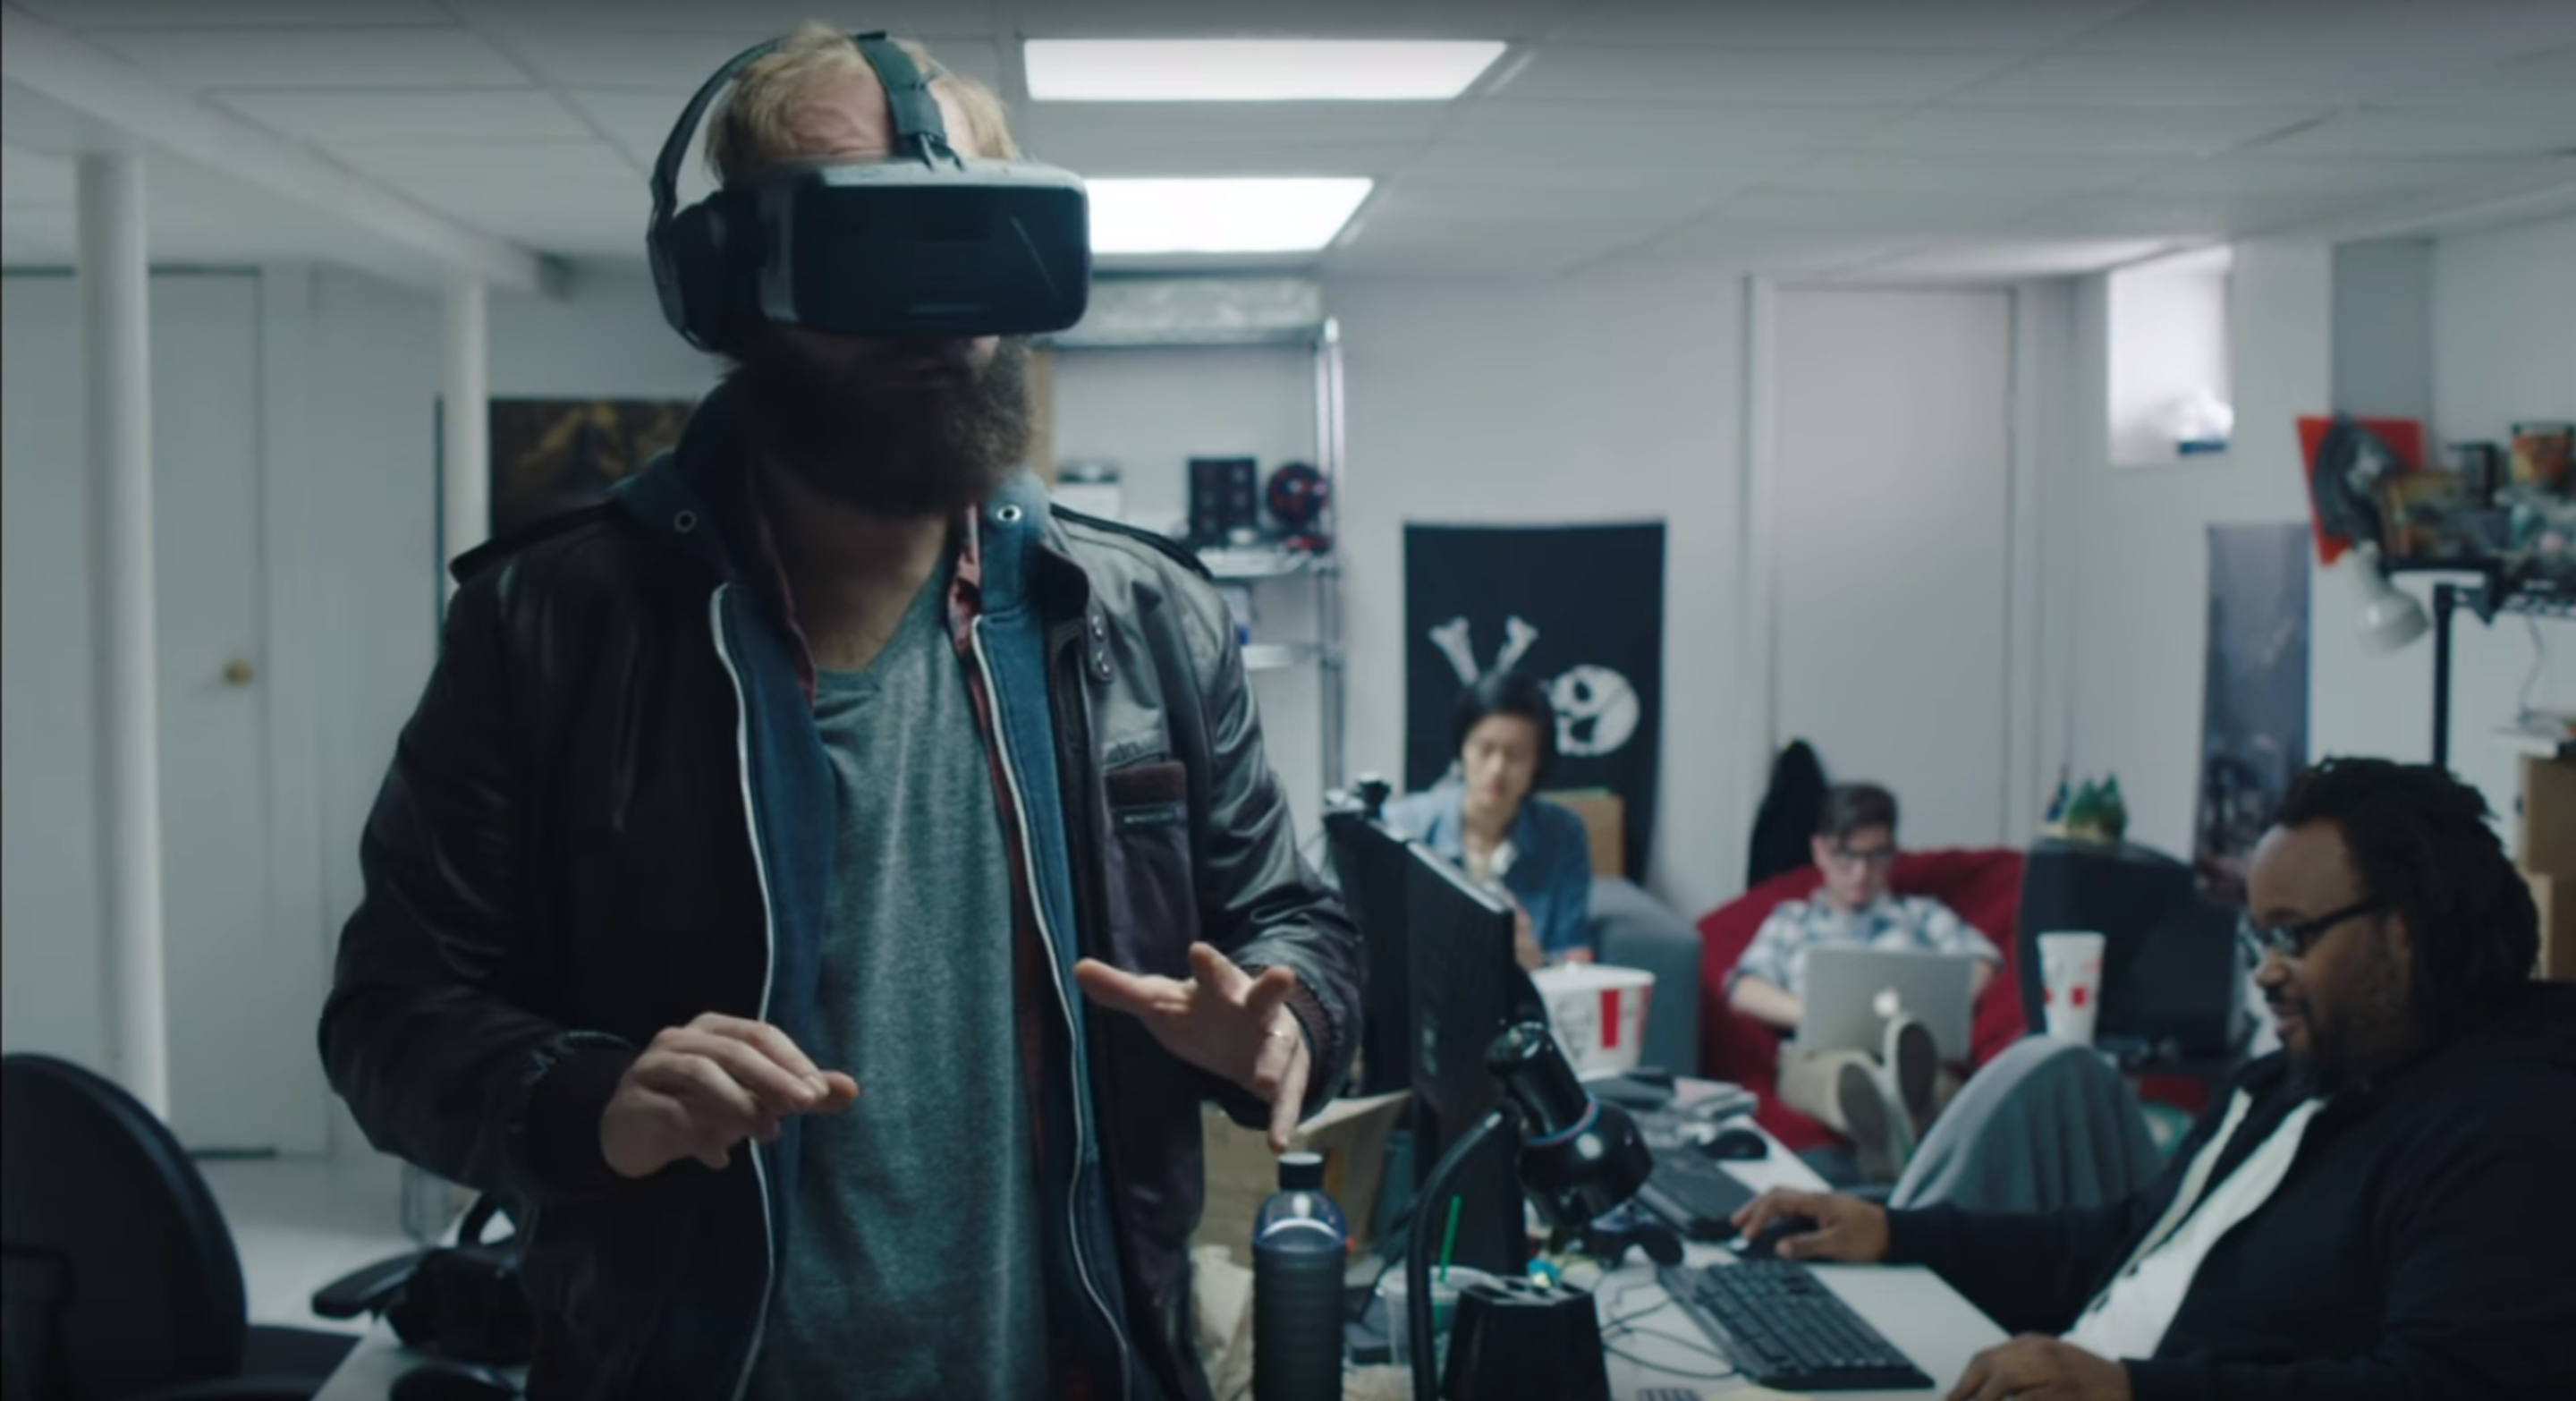 The Guy tries VR in 'High Maintenance' coming to HBO.